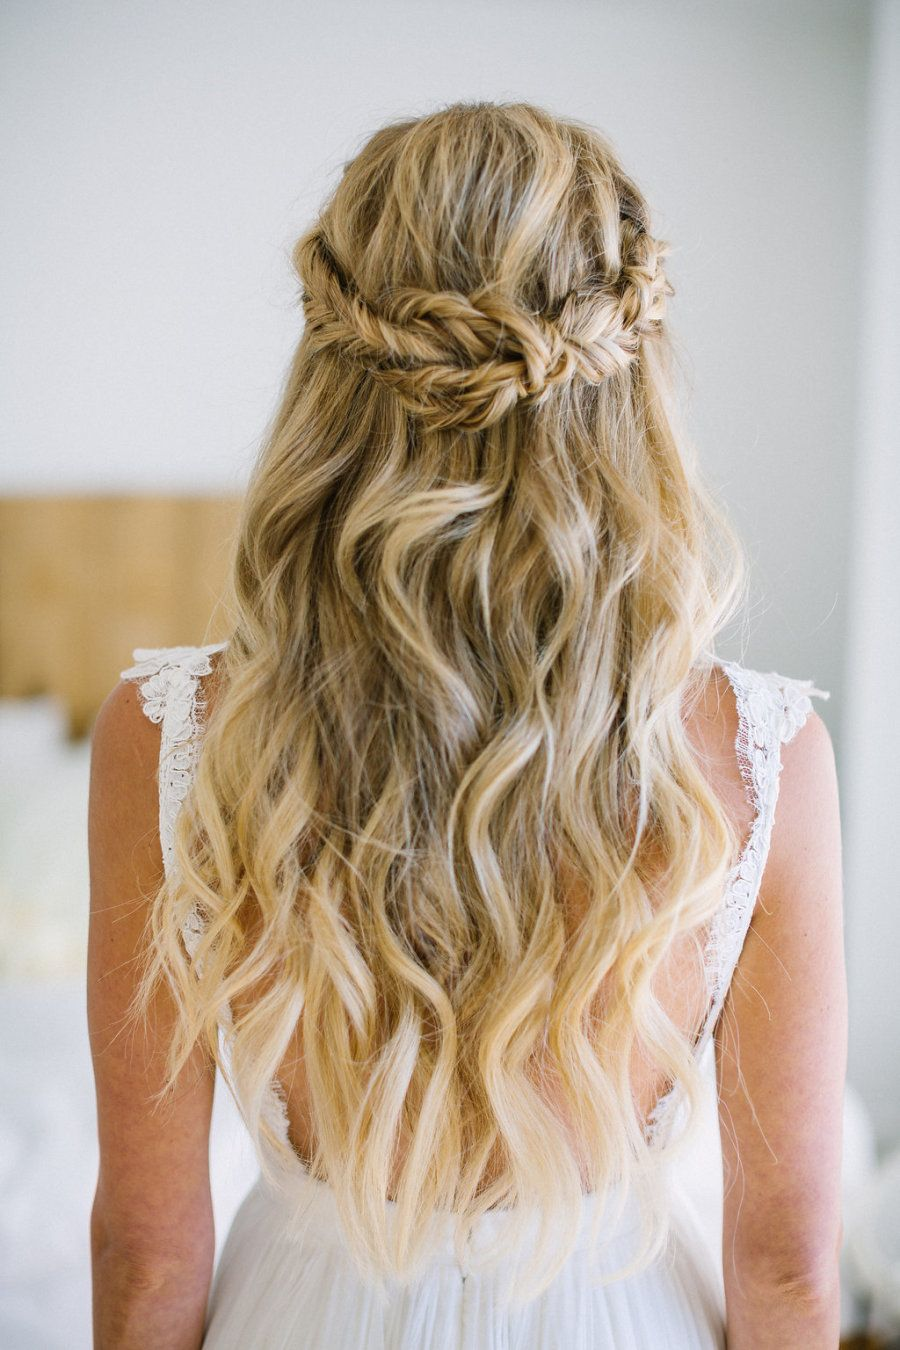 Brighten Your Day With This Colorful Boho Wedding Hair Styles Beach Wedding Hair Down Hairstyles